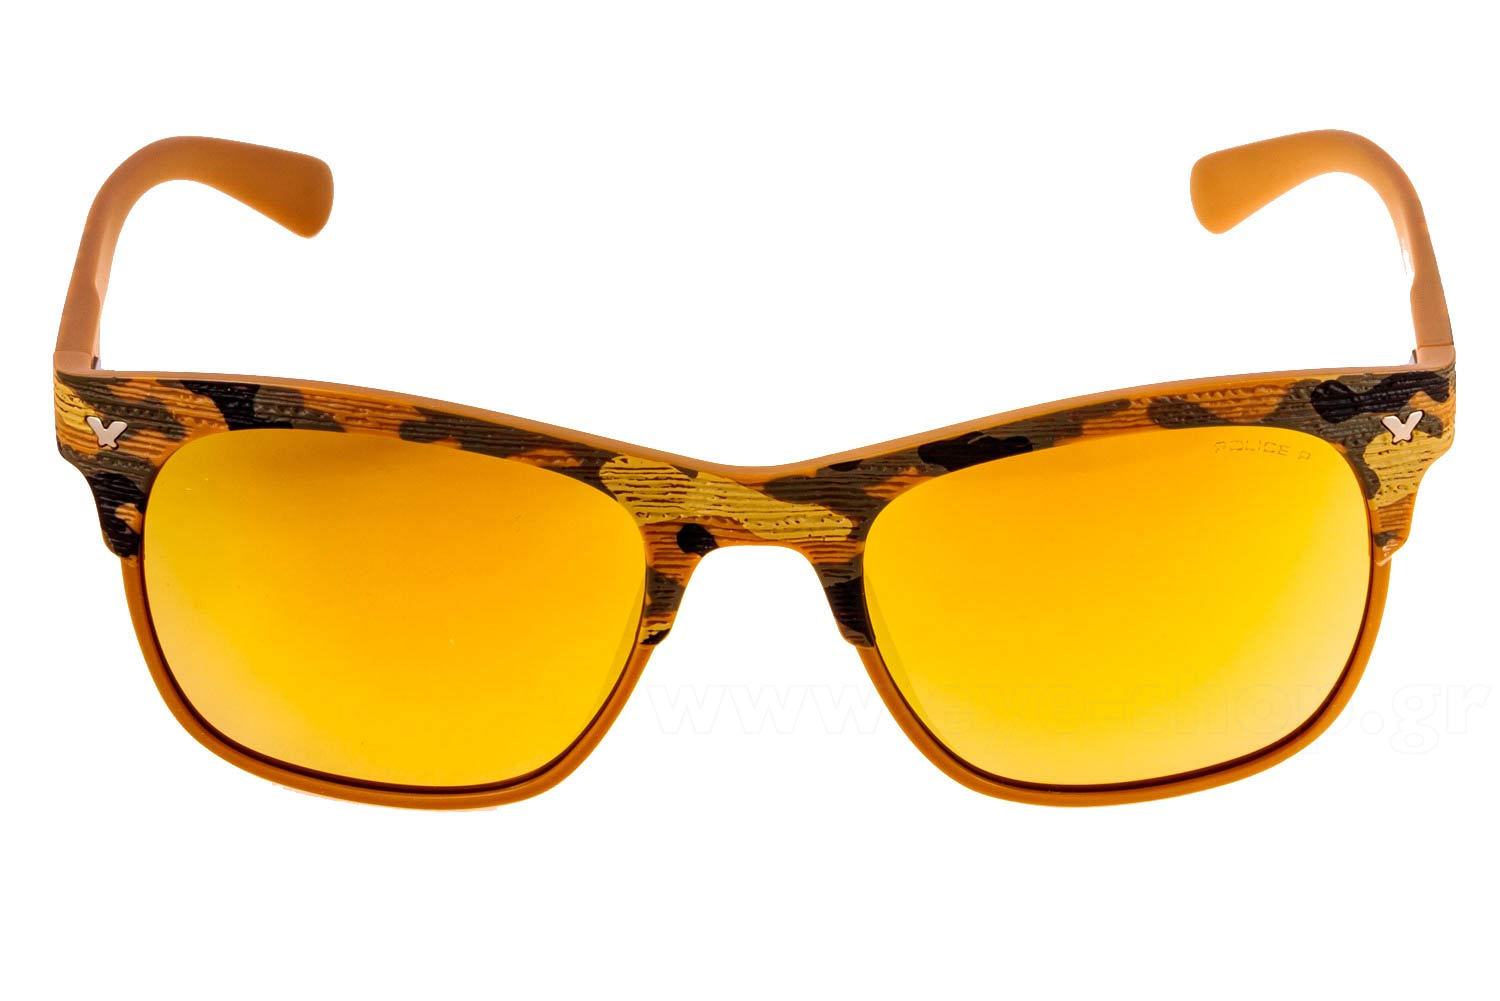 c4b11fa685 POLICE S1950 GAME 2 GEGG POLARIZED 53